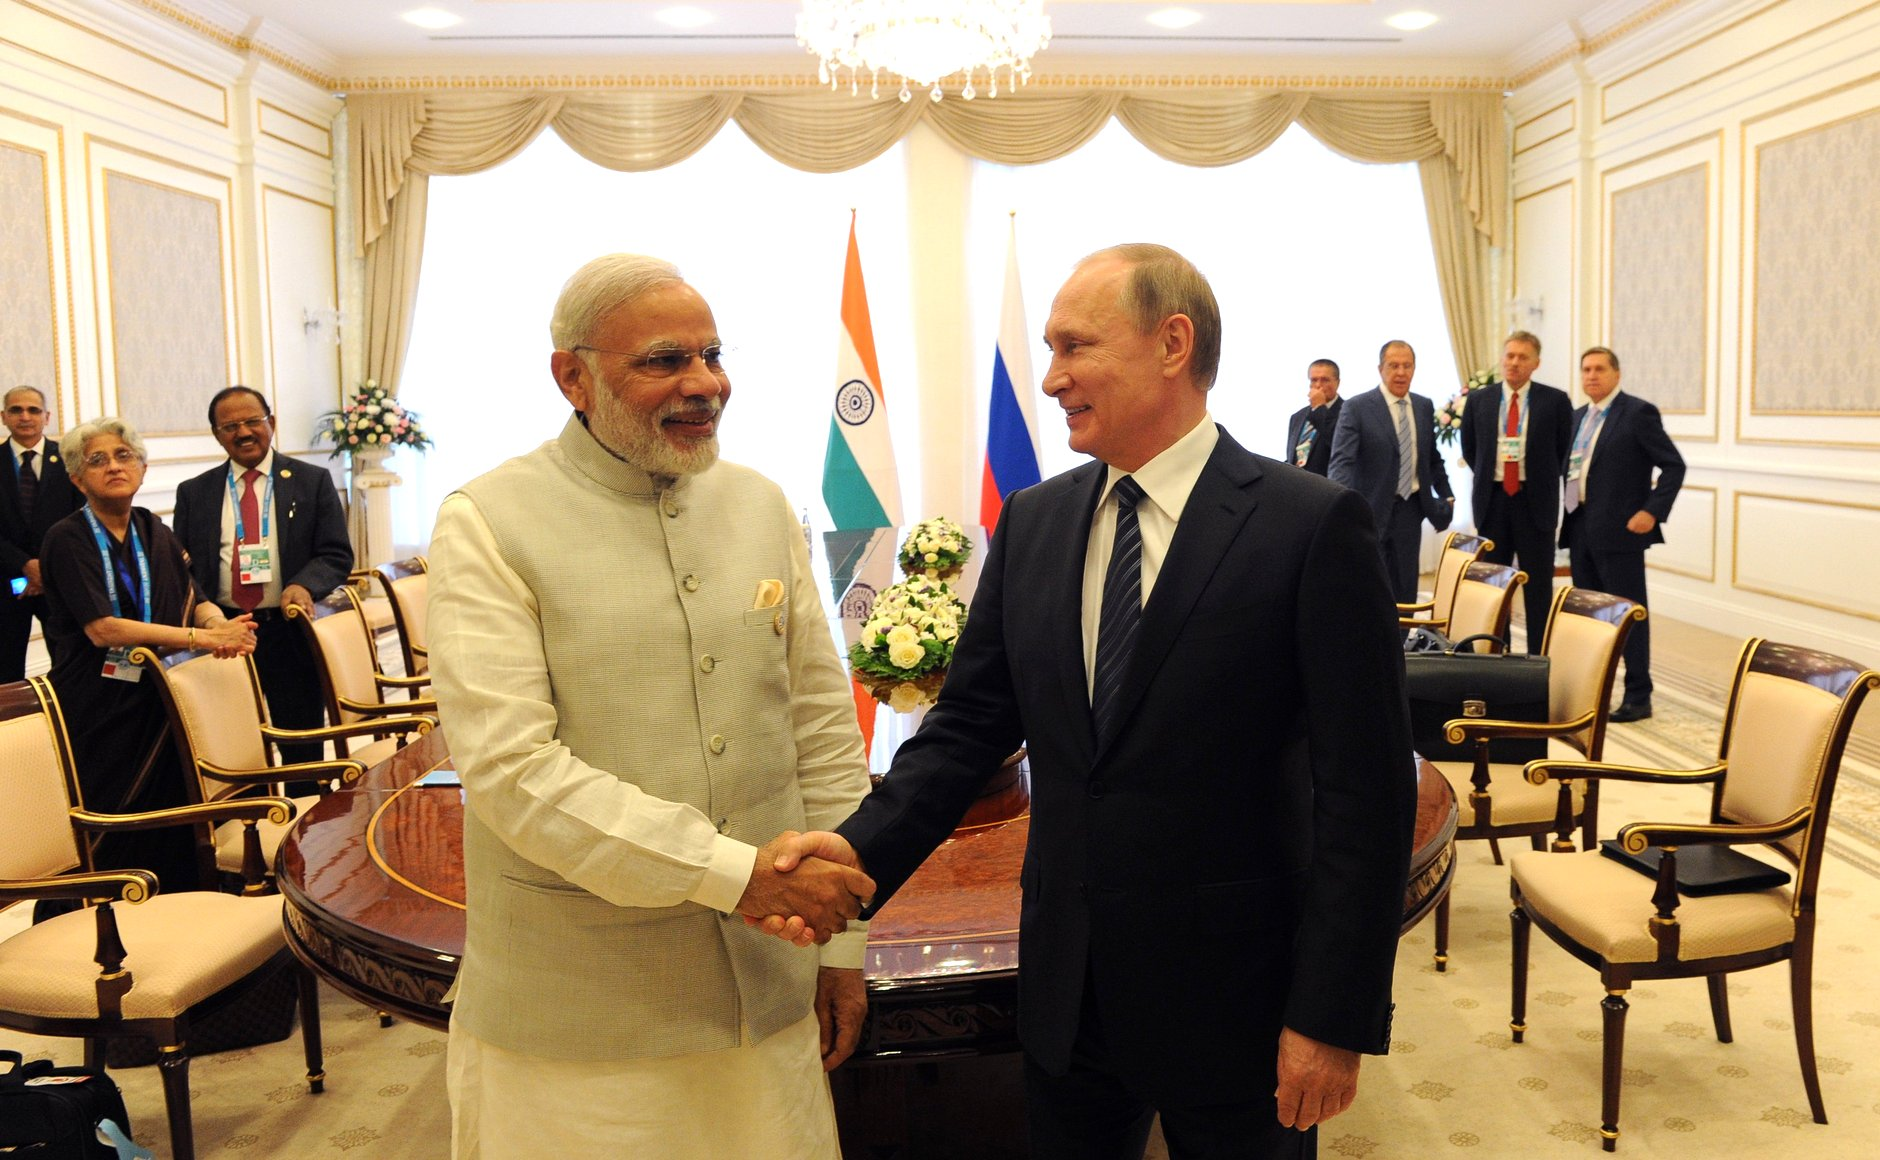 Modi thanked Putin for Russia's strong support for India's application to enter the Nuclear Suppliers Group (NSG).